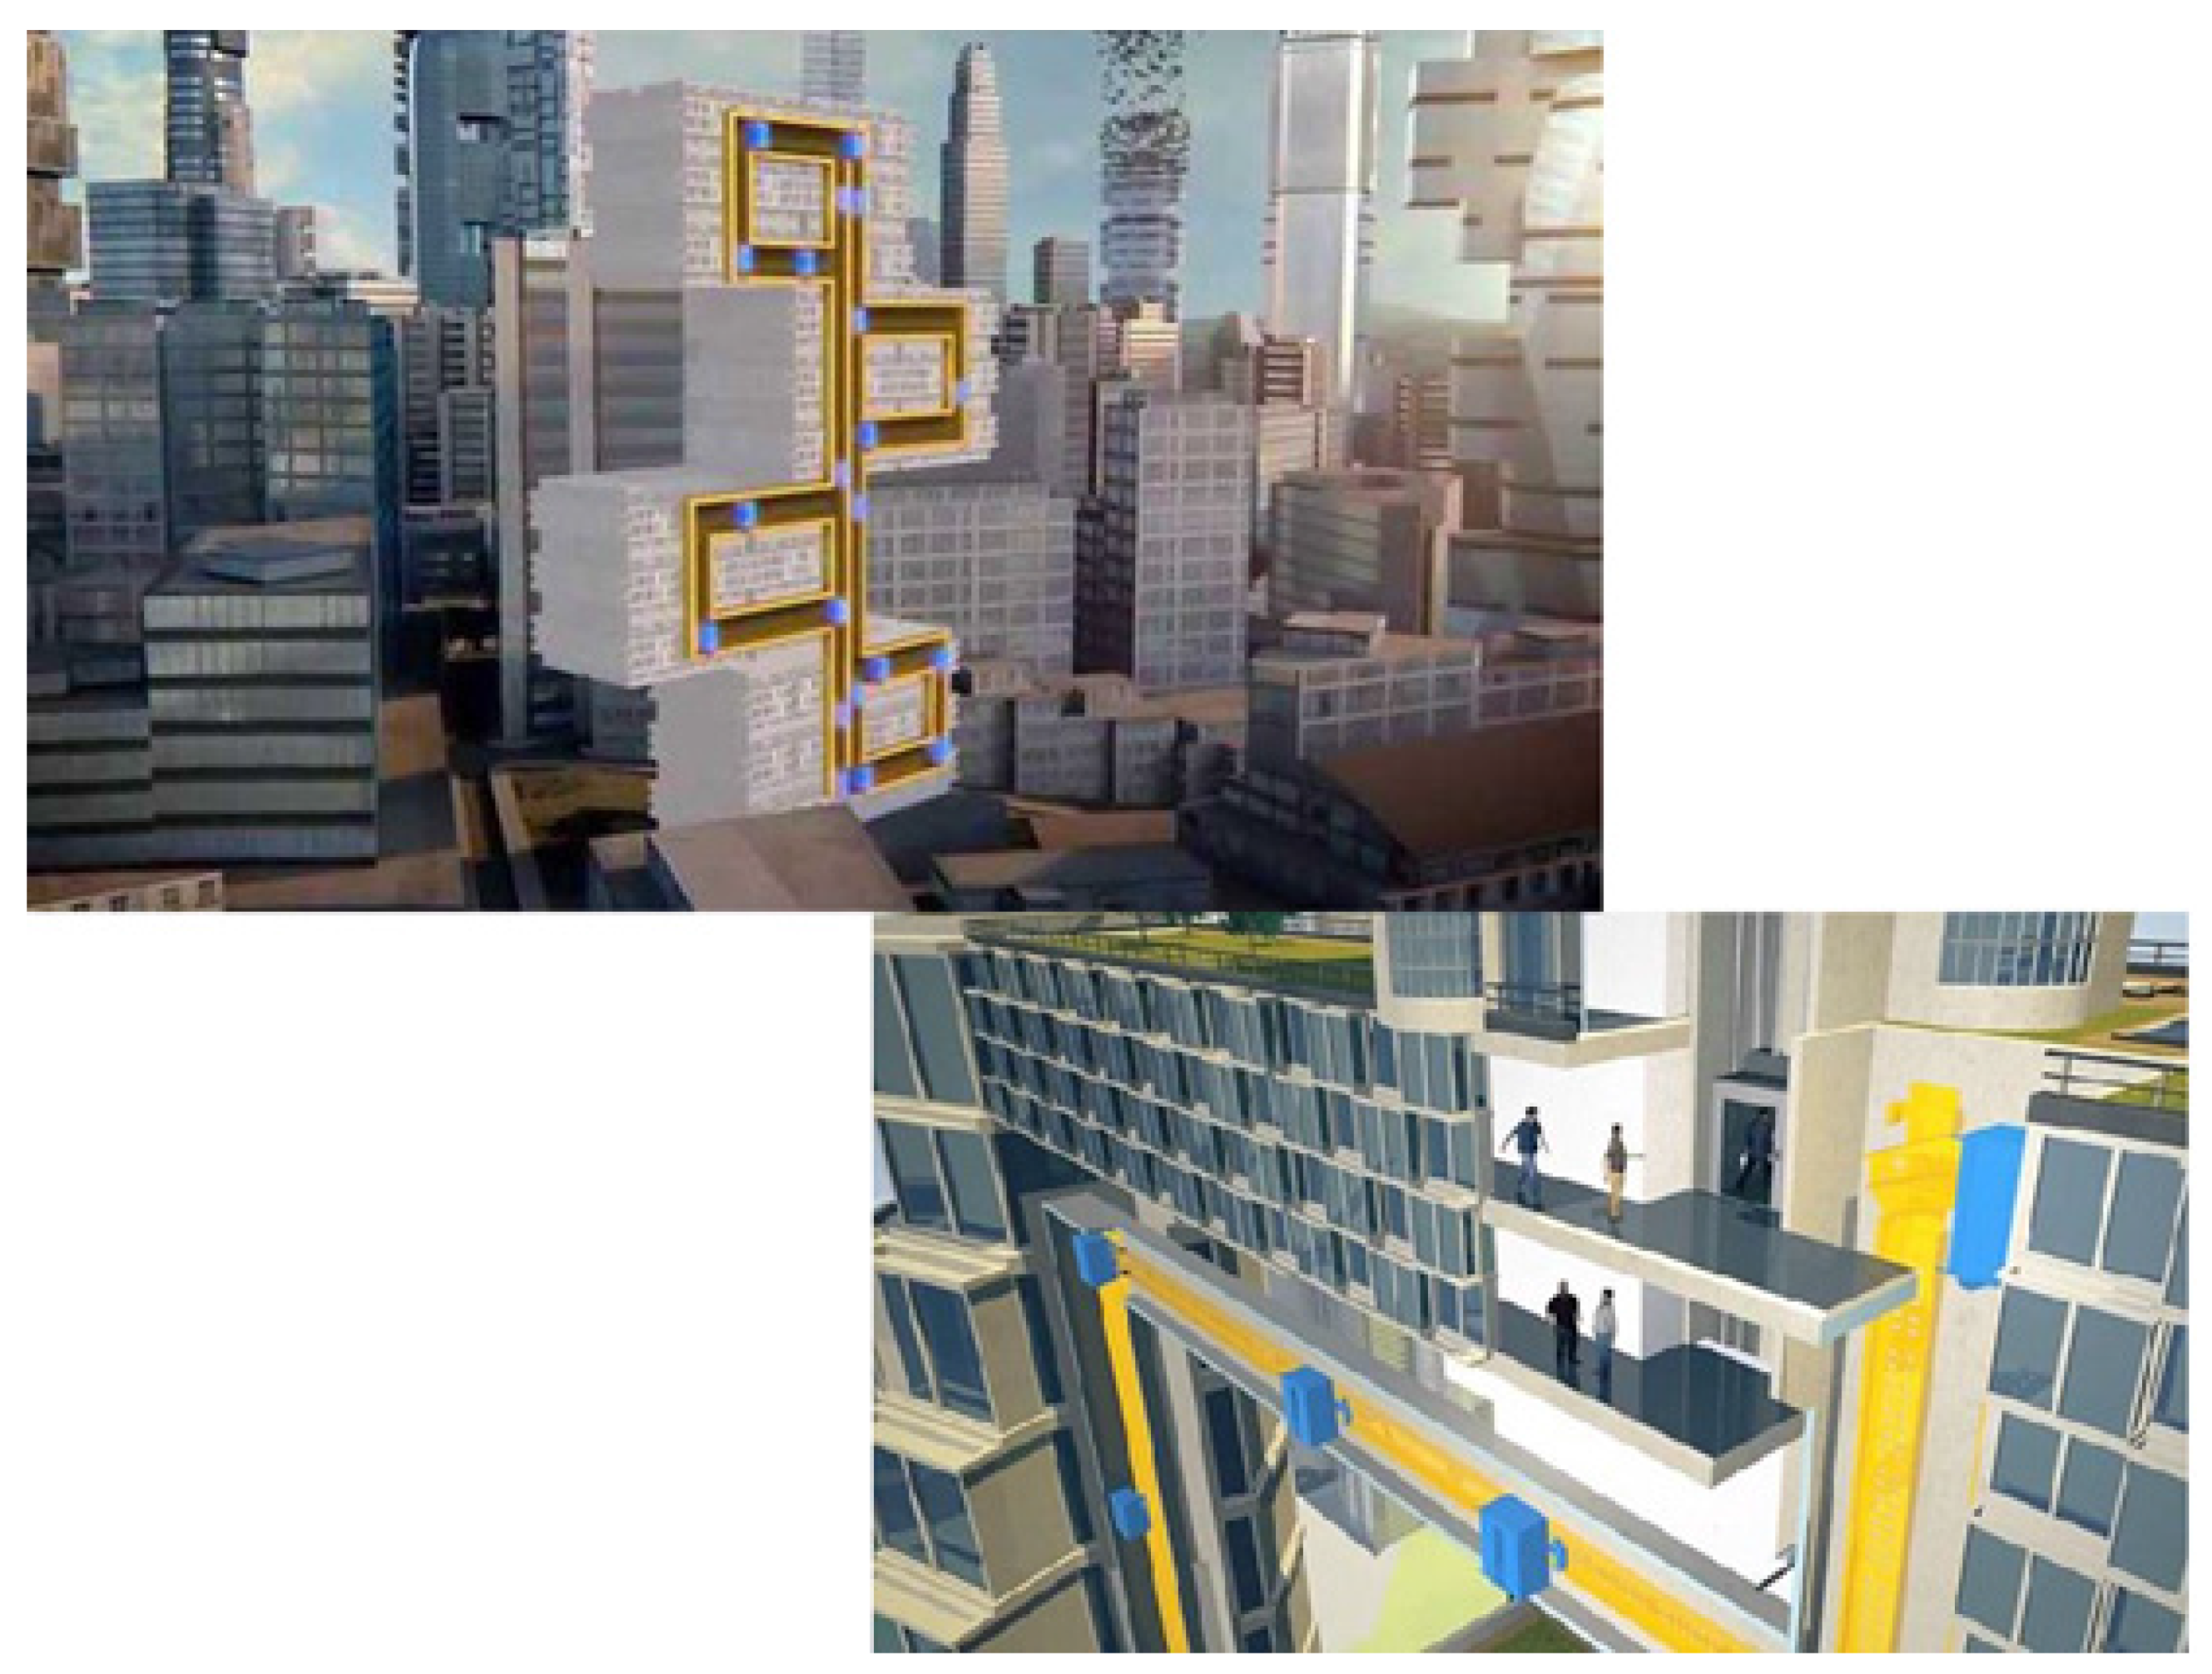 Classic building blocks abel building solutions - Buildings Free Full Text Tall Buildings And Elevators A Review Of Recent Technological Advances Html